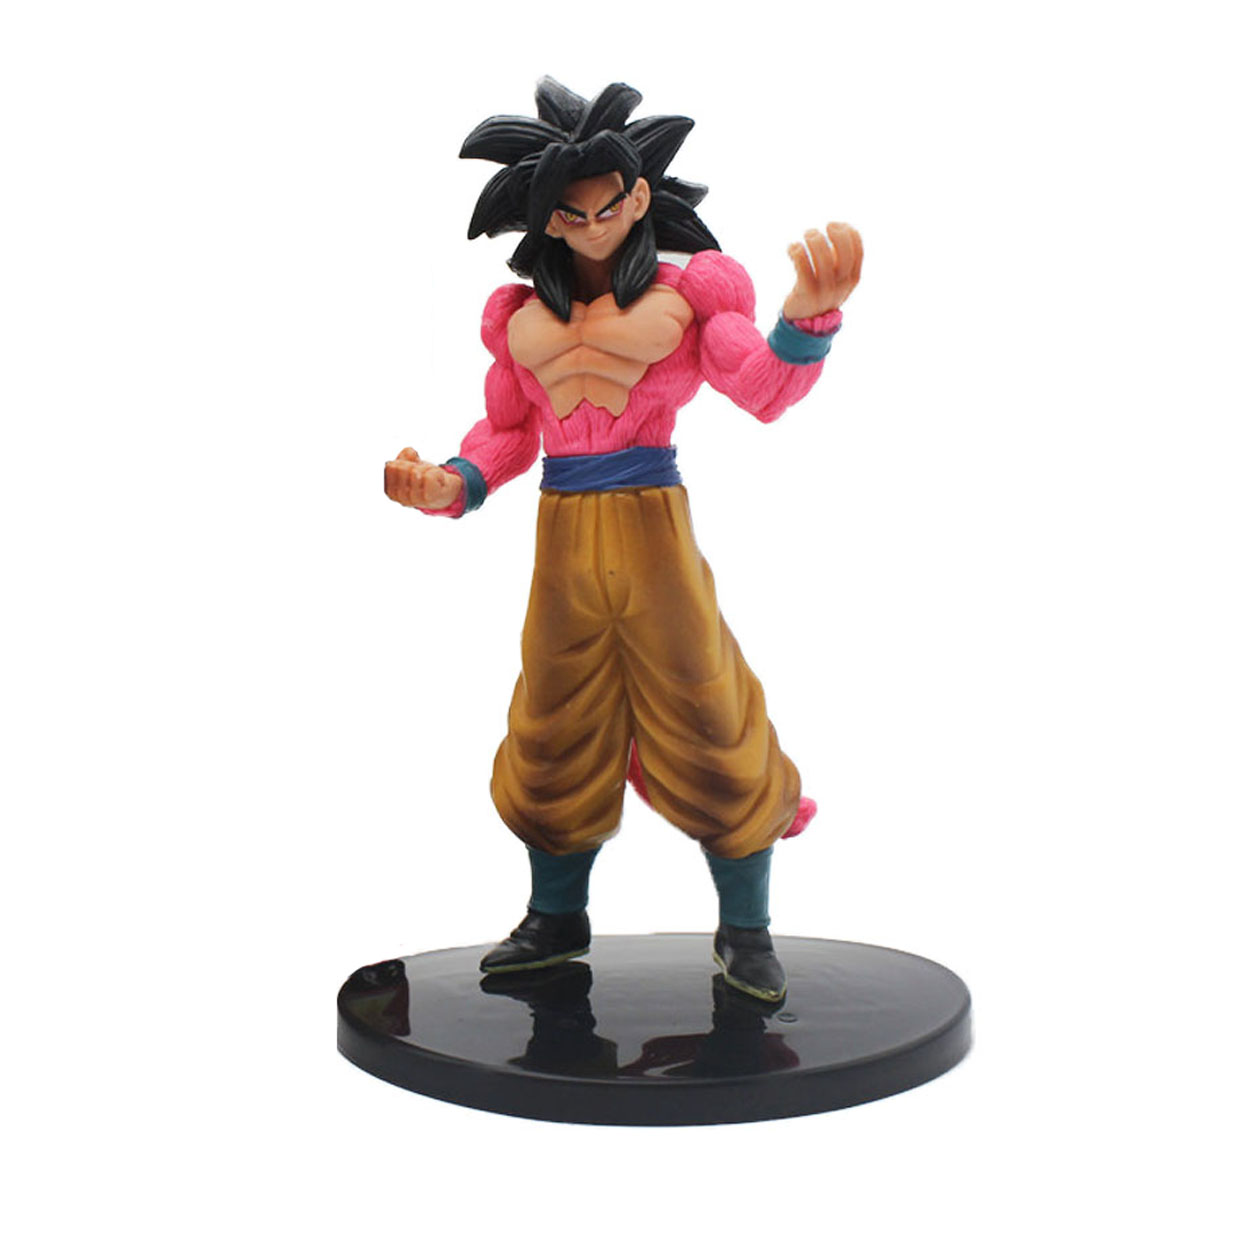 Chanycore 18CM Anime Dragon Ball Z Son GOKU Super Saiyan 4 Action Figures crystal balls PVC Limit Boxed For Kids Gift Toy 0386 1 pcs anime dragon ball z toy figure super saiyan goku pvc action figures big size dragonball model toys for boys kids wholesale